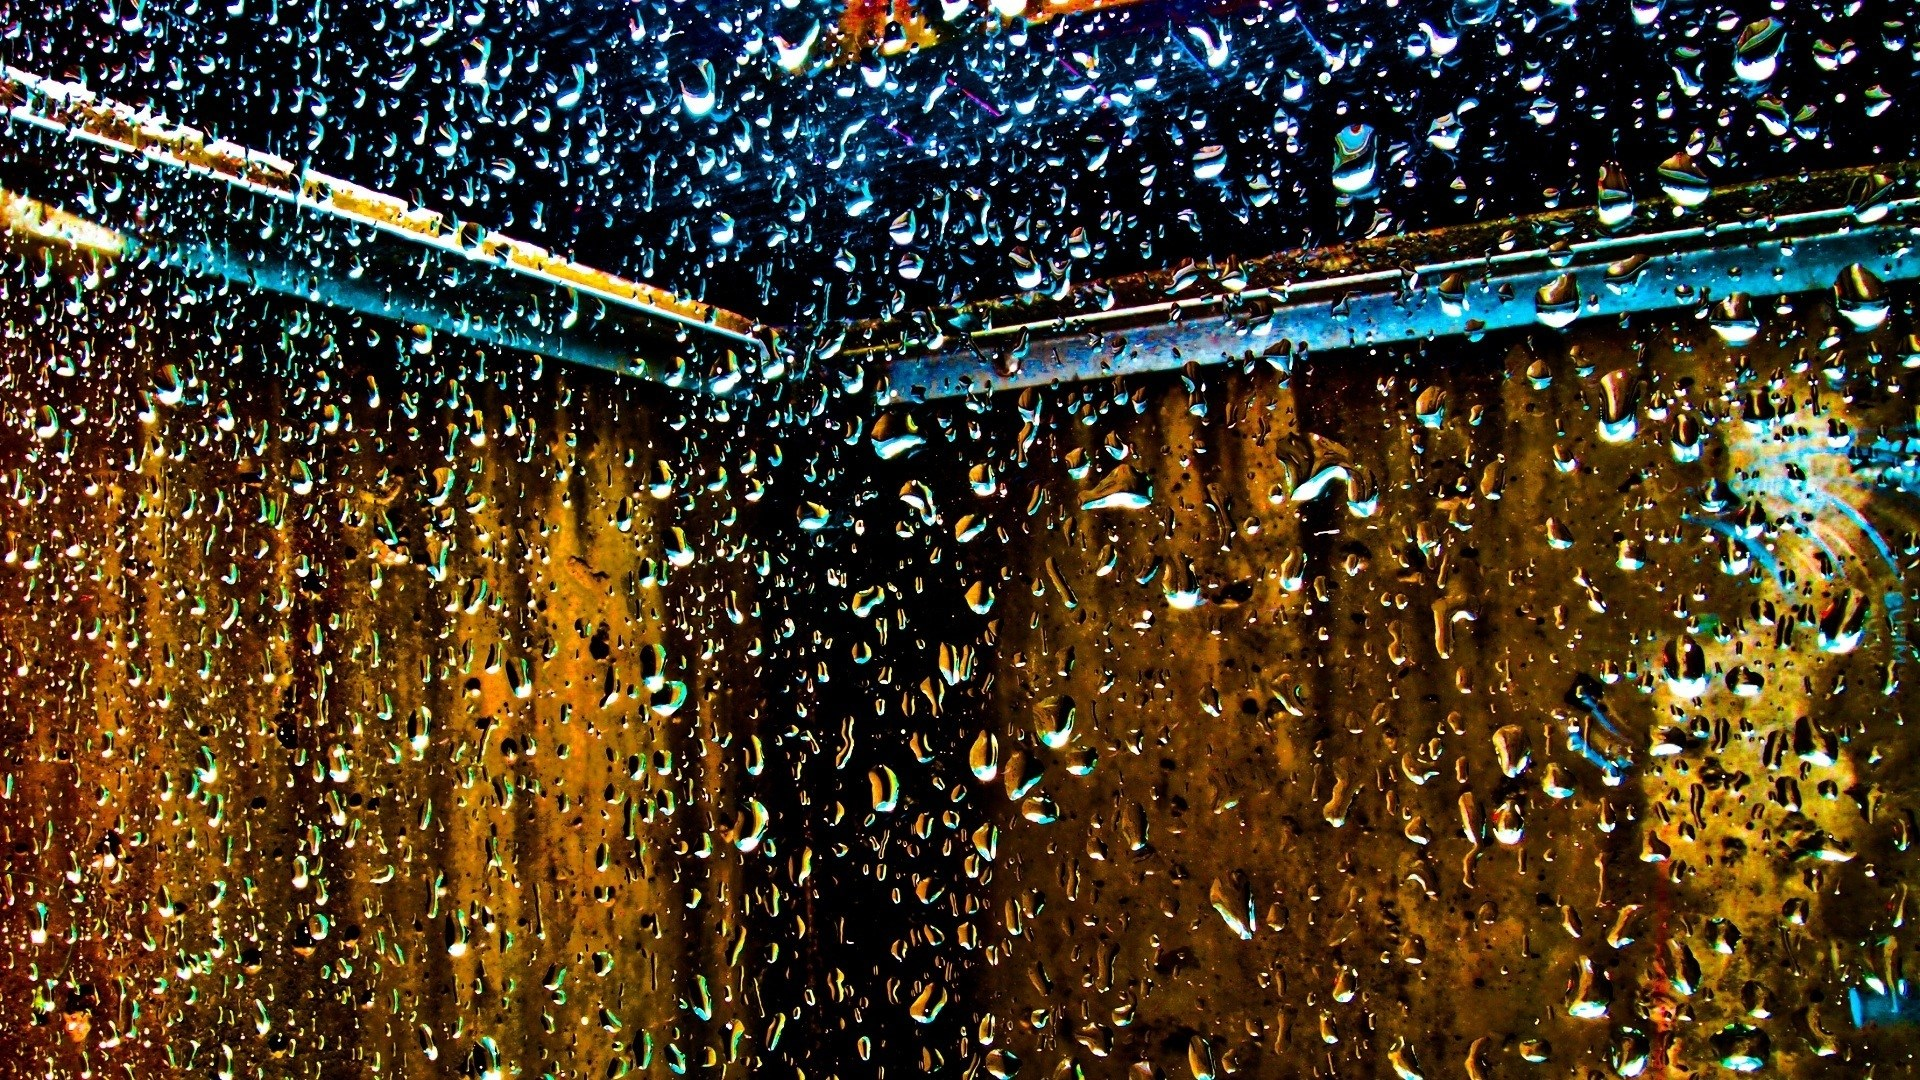 Top 10 Sports Car Wallpapers Water Droplets Window Panes Glass Wallpaper 1920x1080